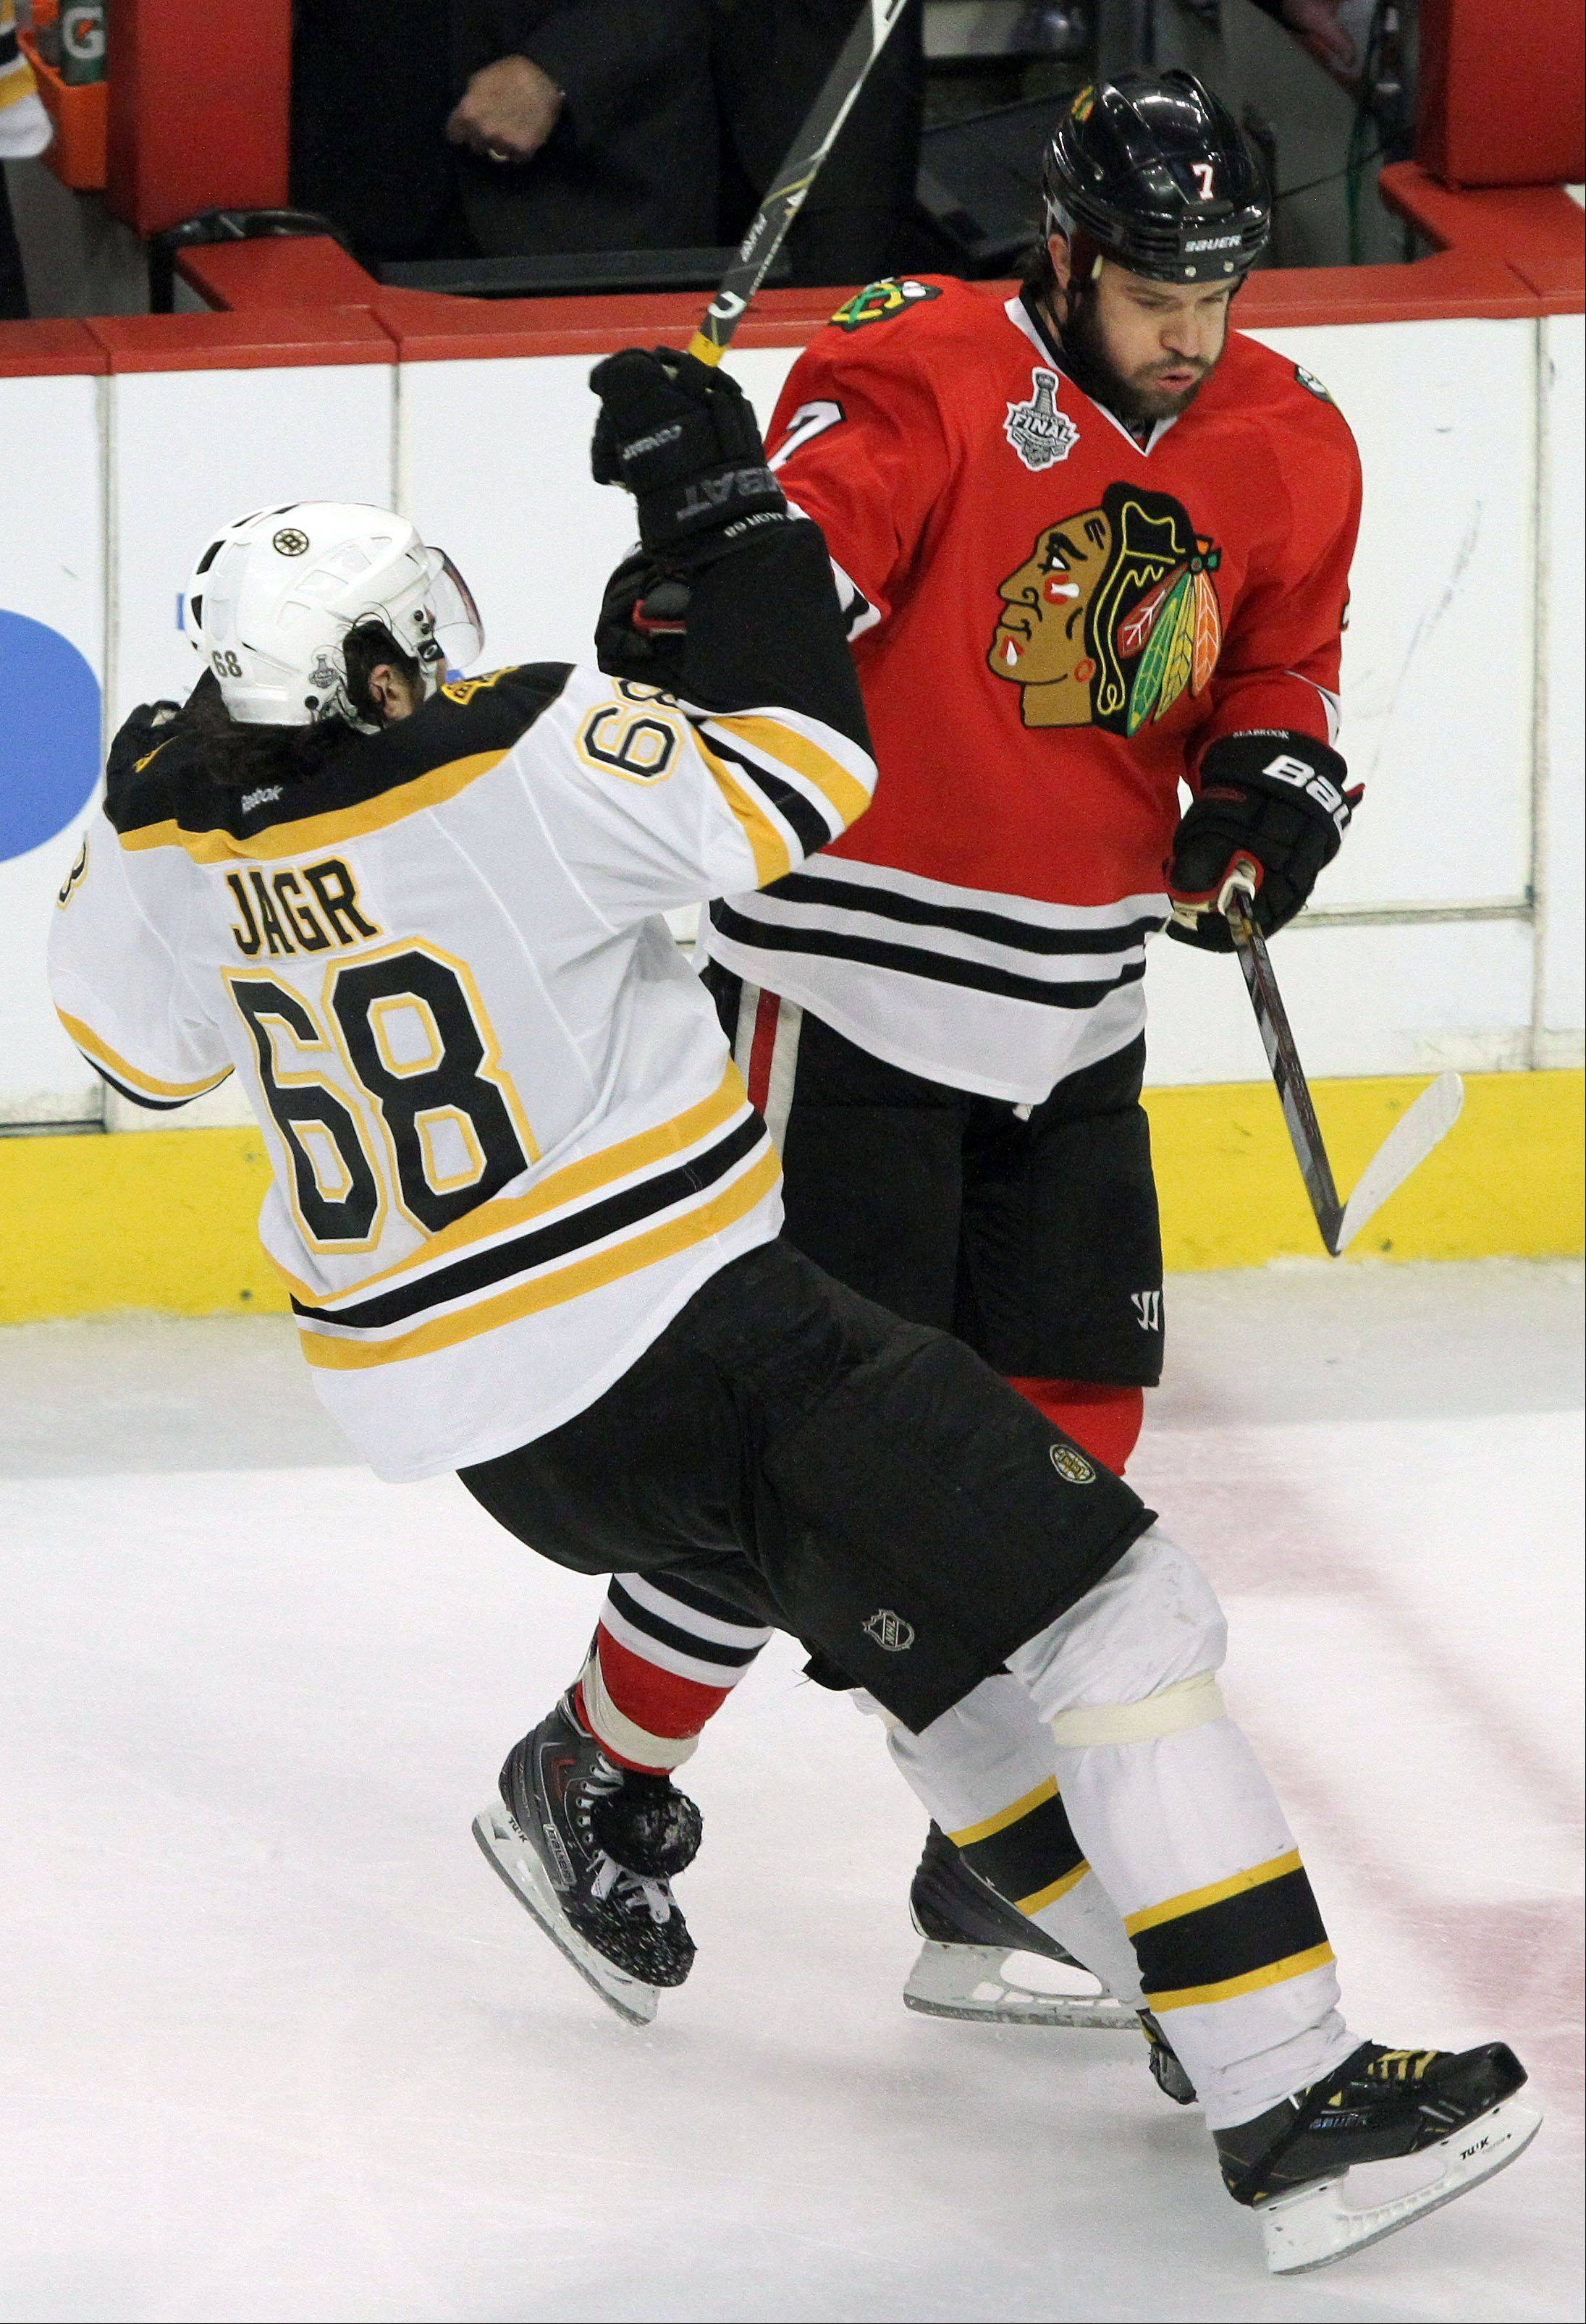 Blackhawks defenseman Brent Seabrook puts a hit on Boston Bruins right wing Jaromir Jagr during game 2 of the Stanley Cup Final against the Boston Bruins at the United Center on Saturday.